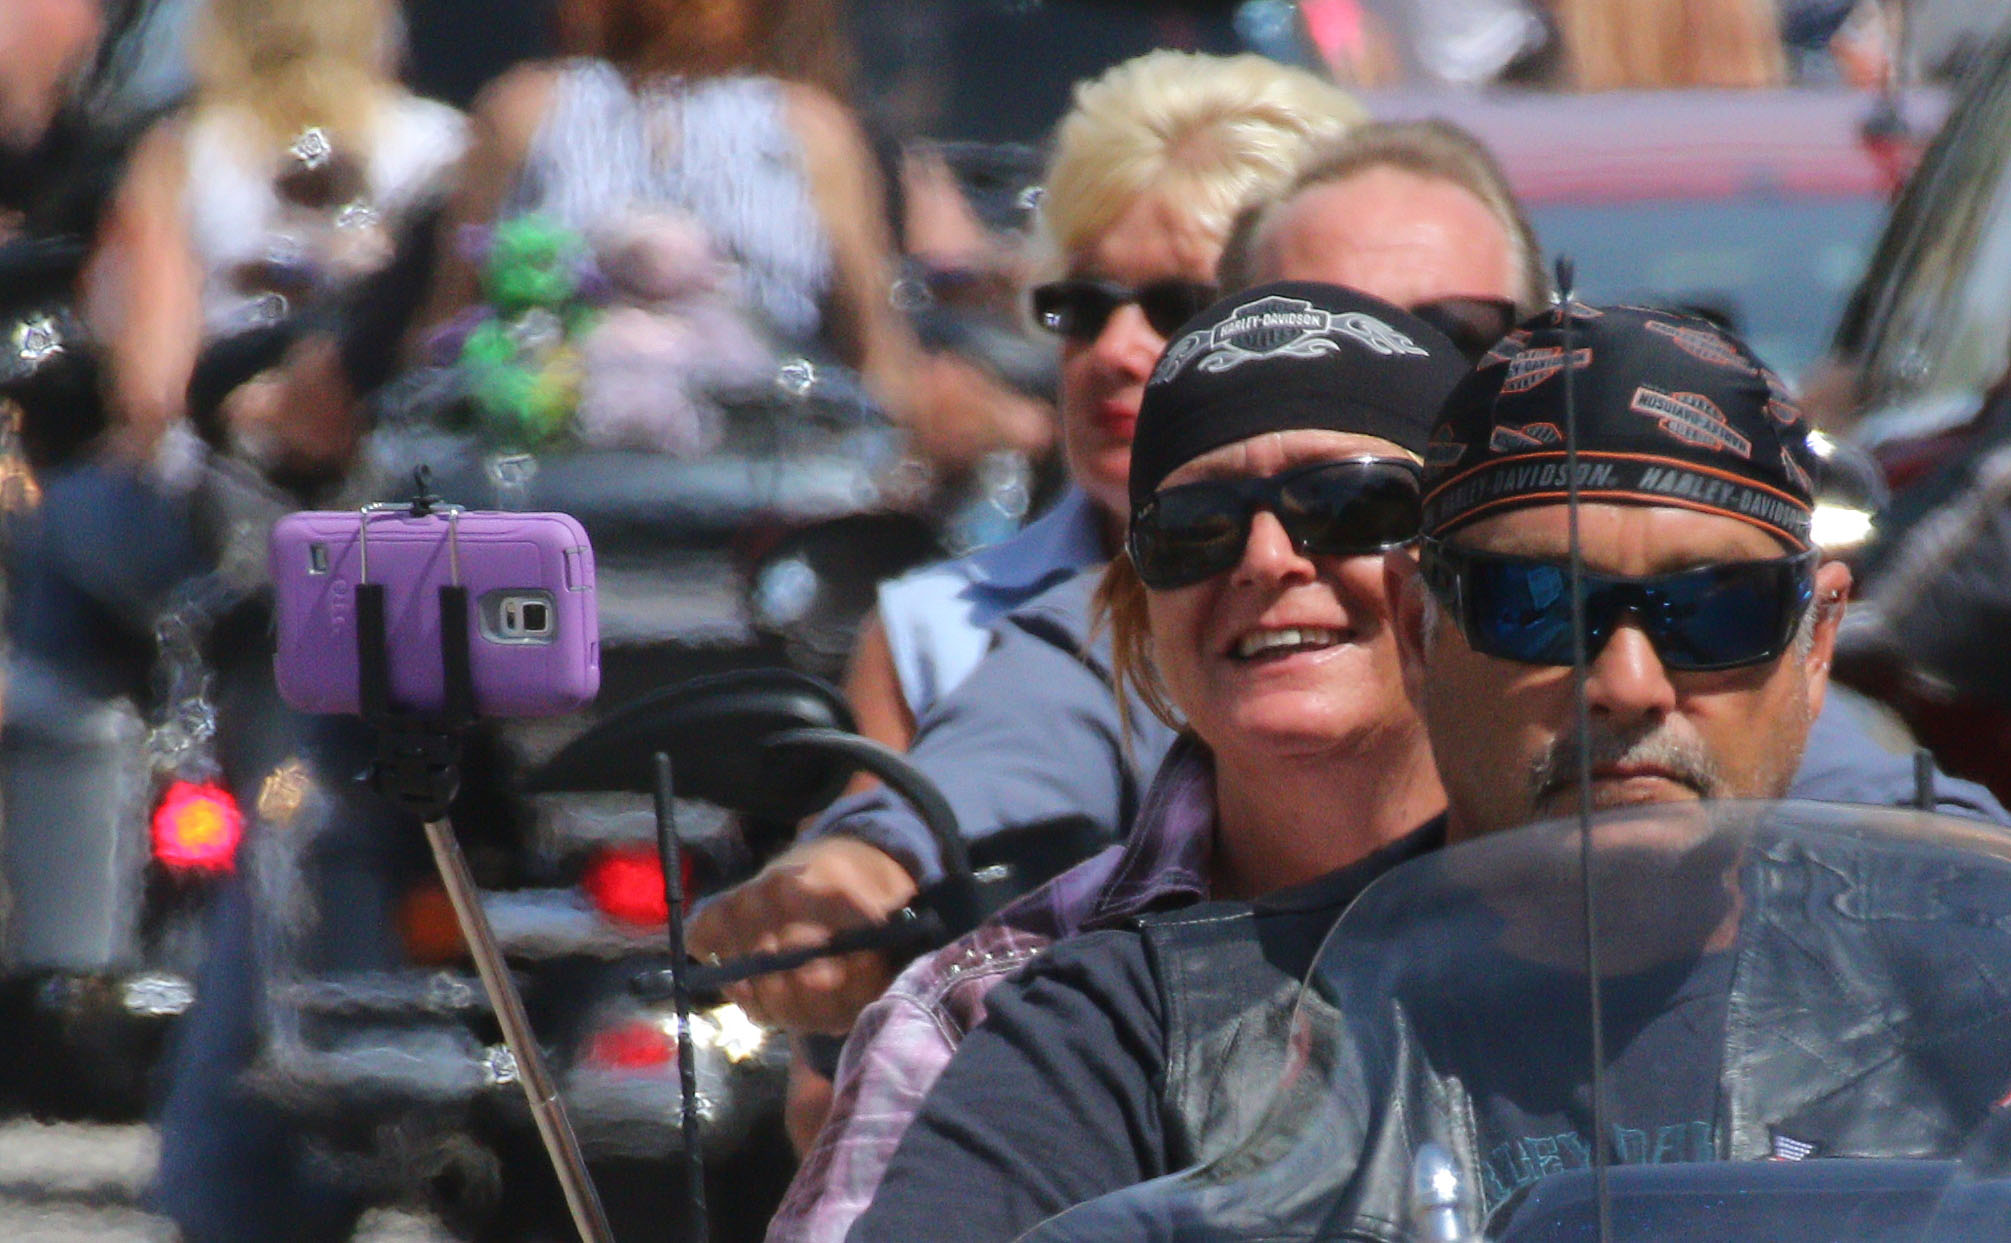 News-Journal/JIM TILLER A woman riding on the back of a motorcycle takes a selfie with her smart phone as the cruise Main Street  in Daytona Beach Friday , March 13, 2015.